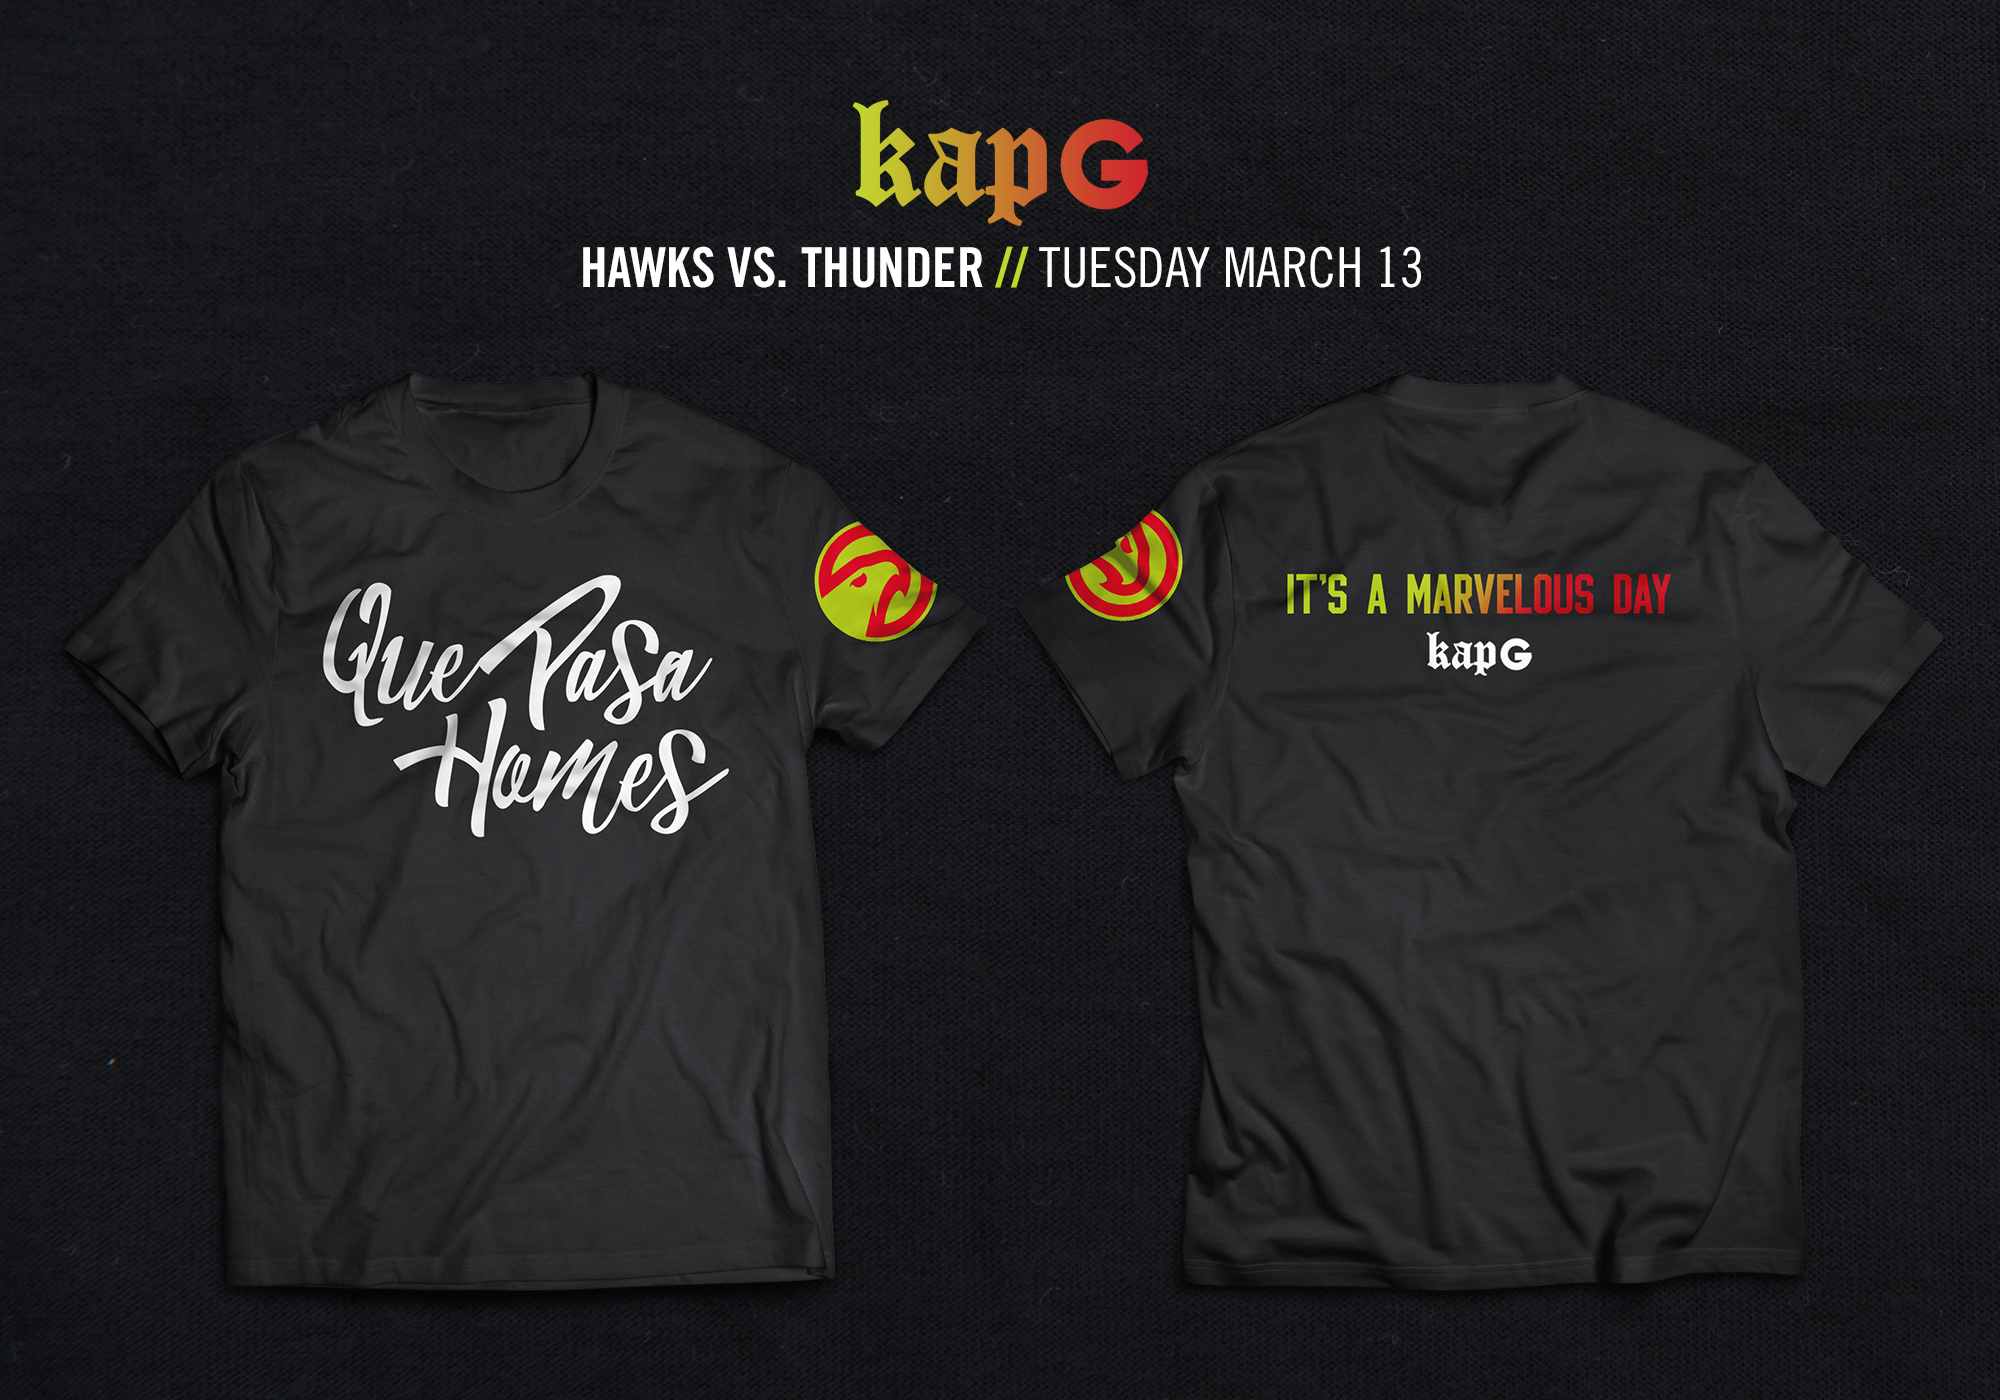 Hawks and KAP G Tshirt